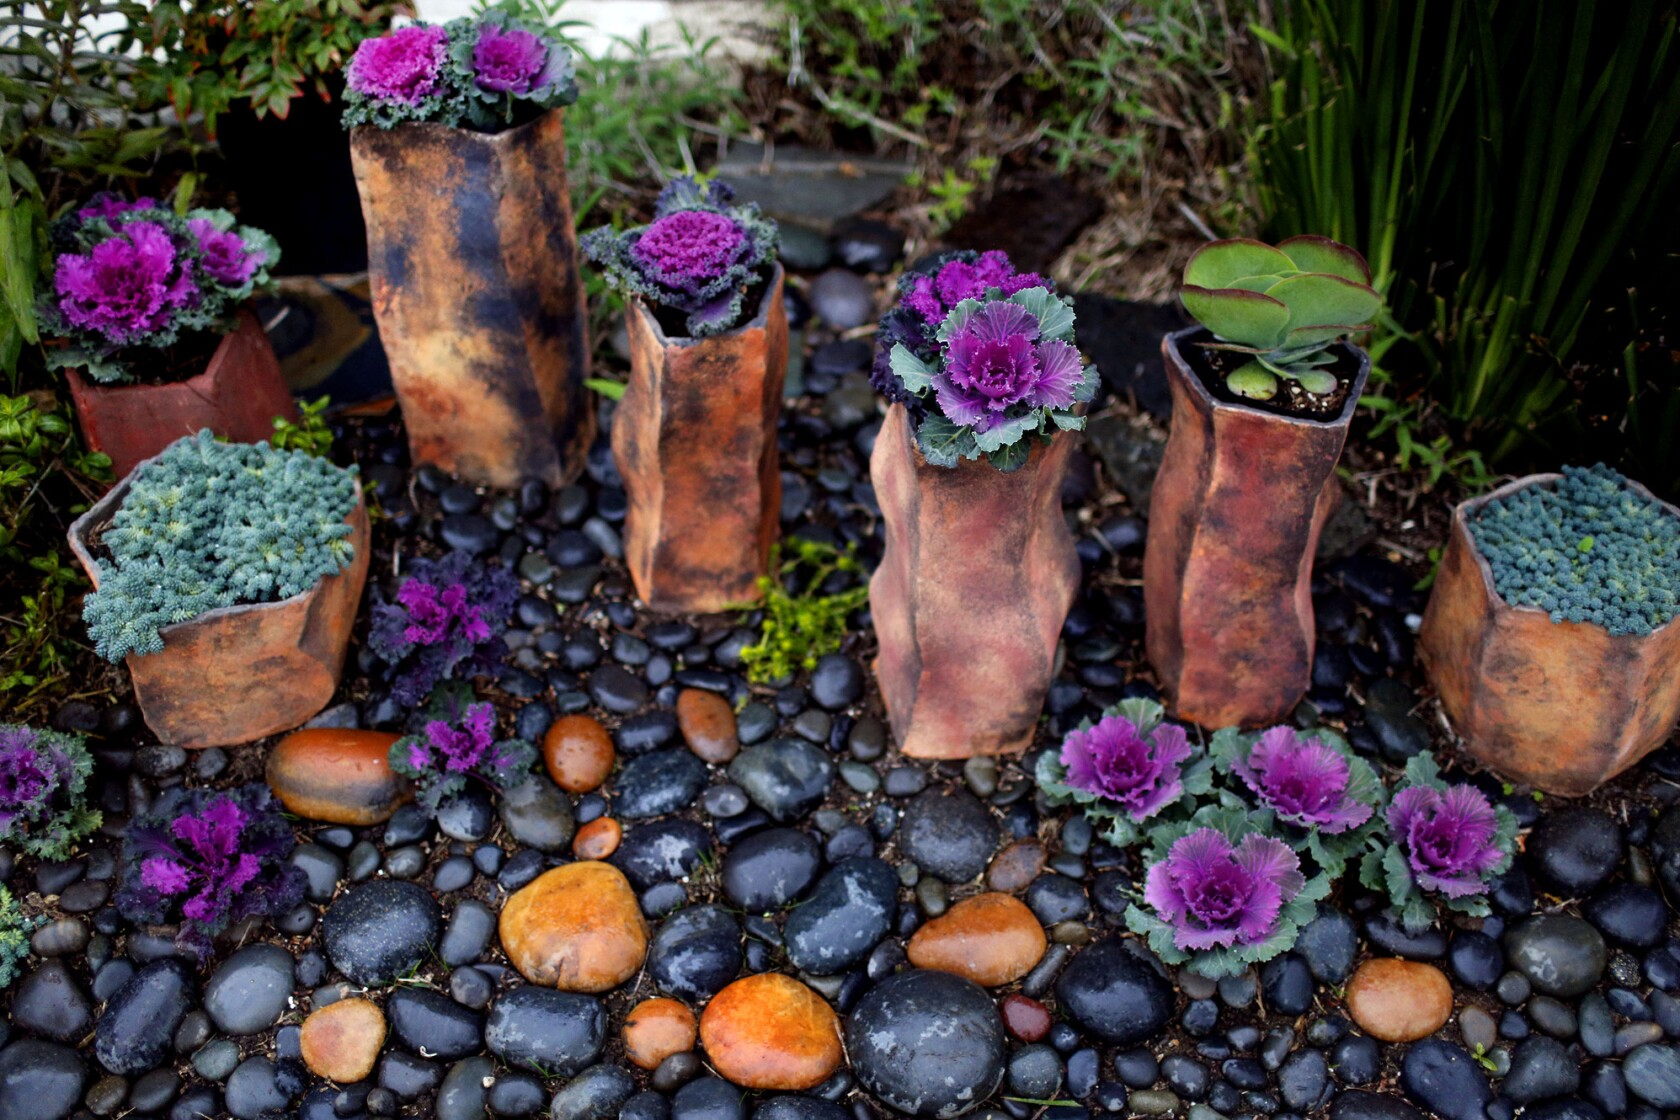 How the drought led an L.A. artist to create this stunning container garden